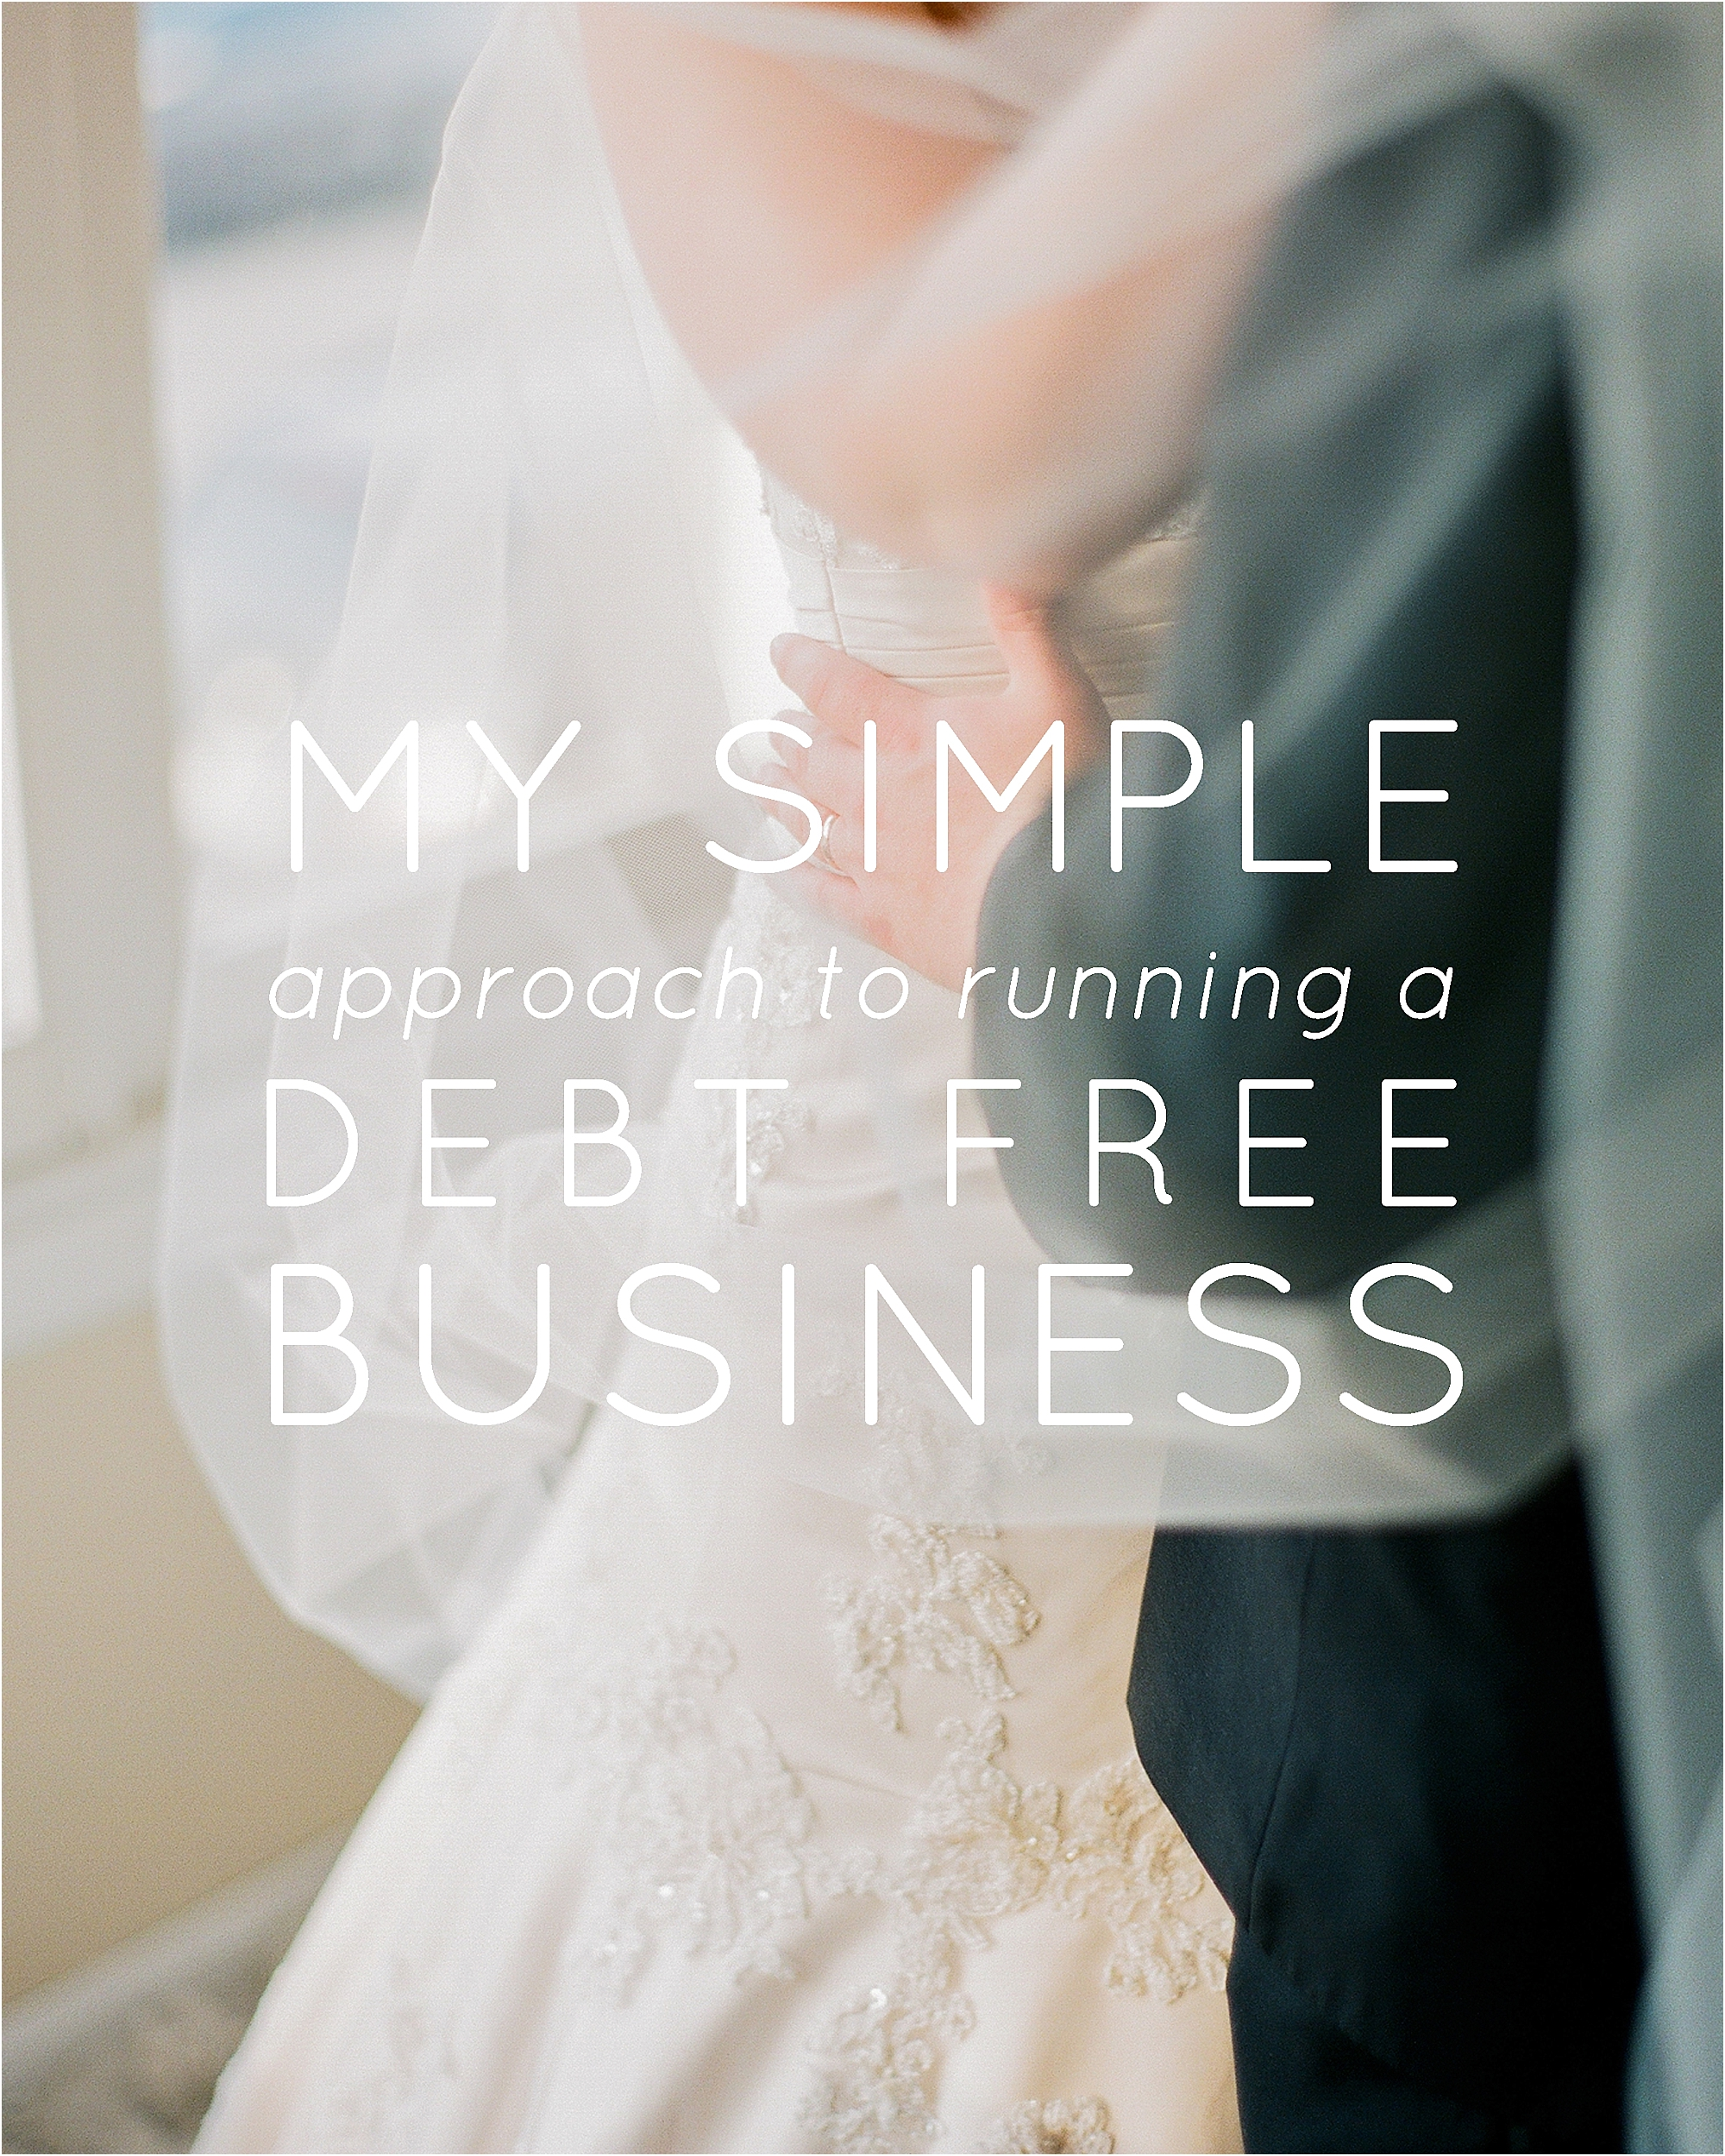 My Simple Approach to Running a Debt Free Business - The Jordan Brittley Blog